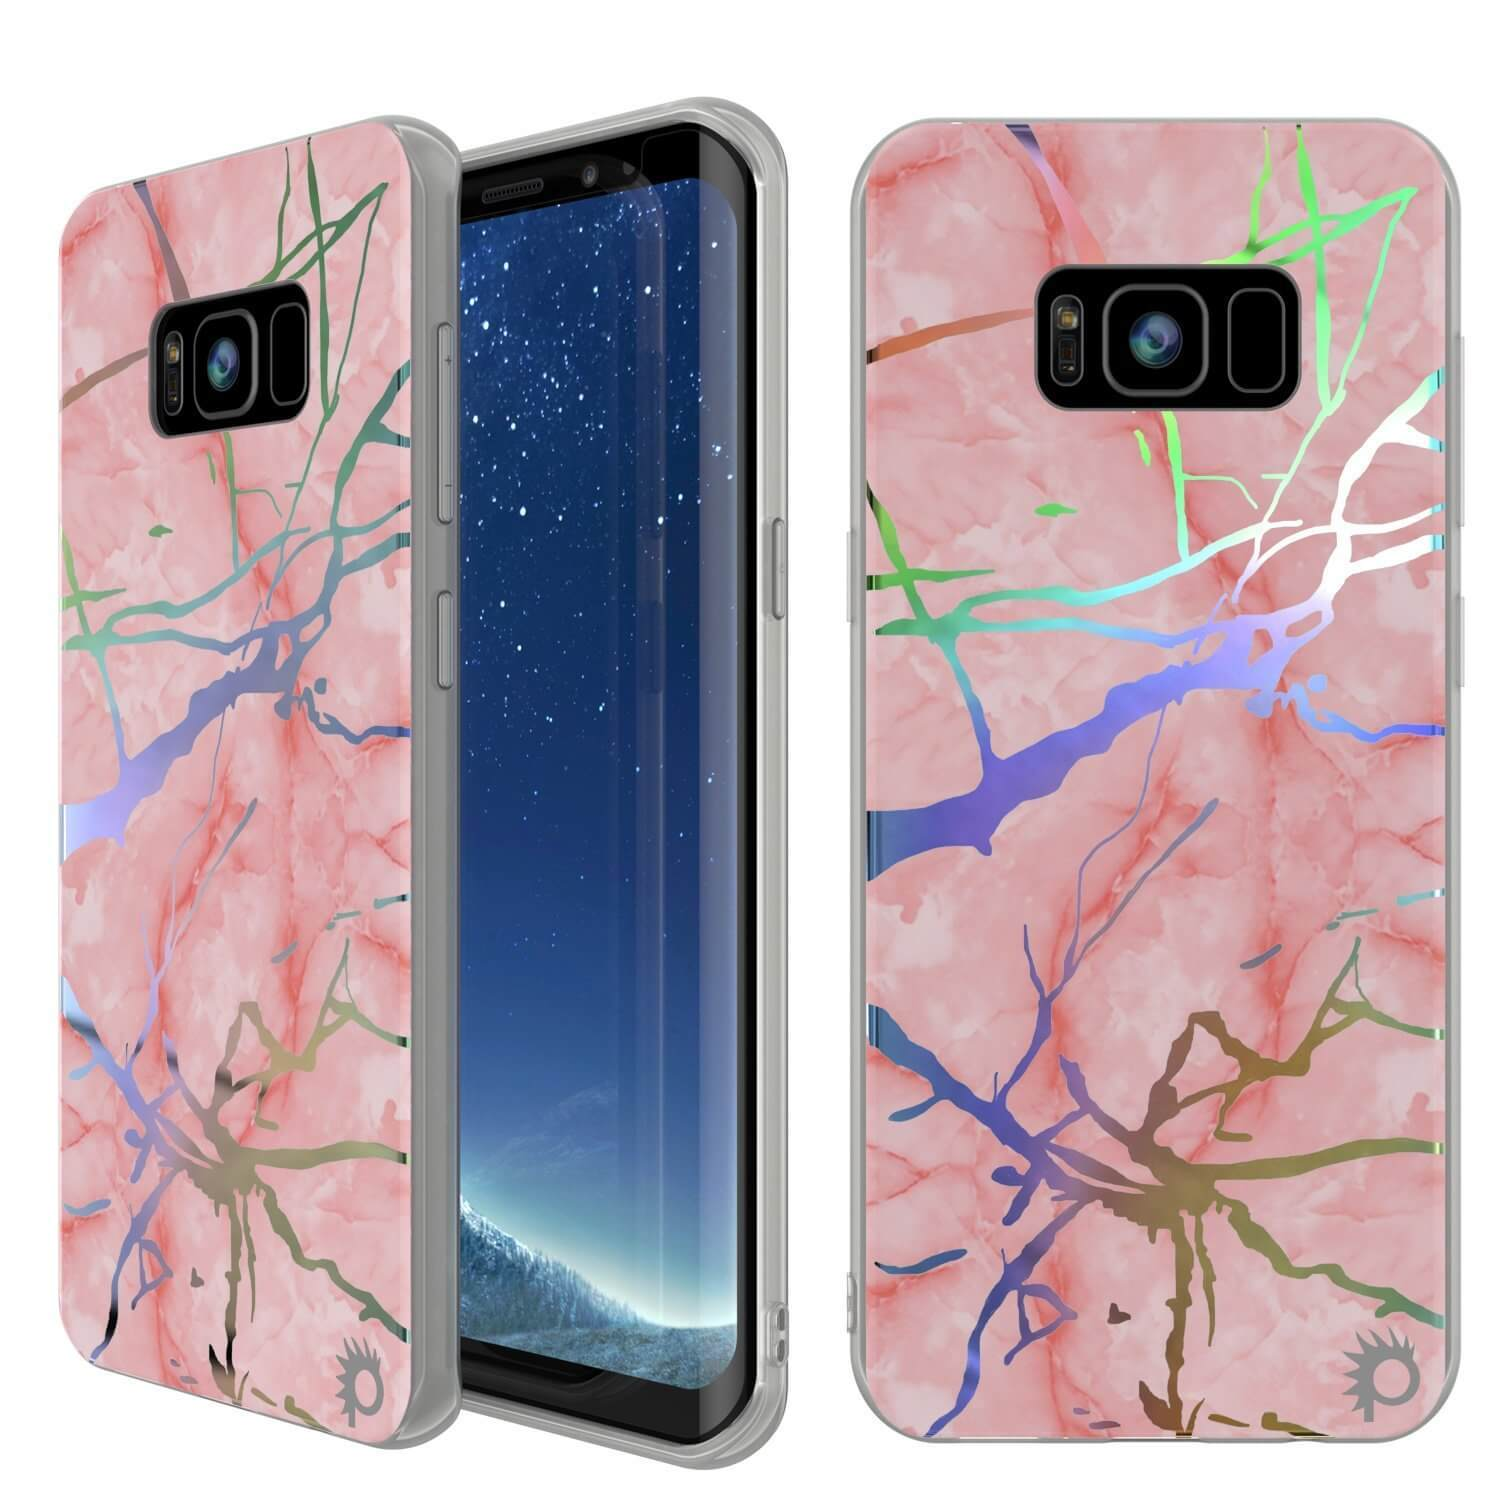 Galaxy S8 Plus Marble Case, Protective Full Body Cover[Rose Mirage]